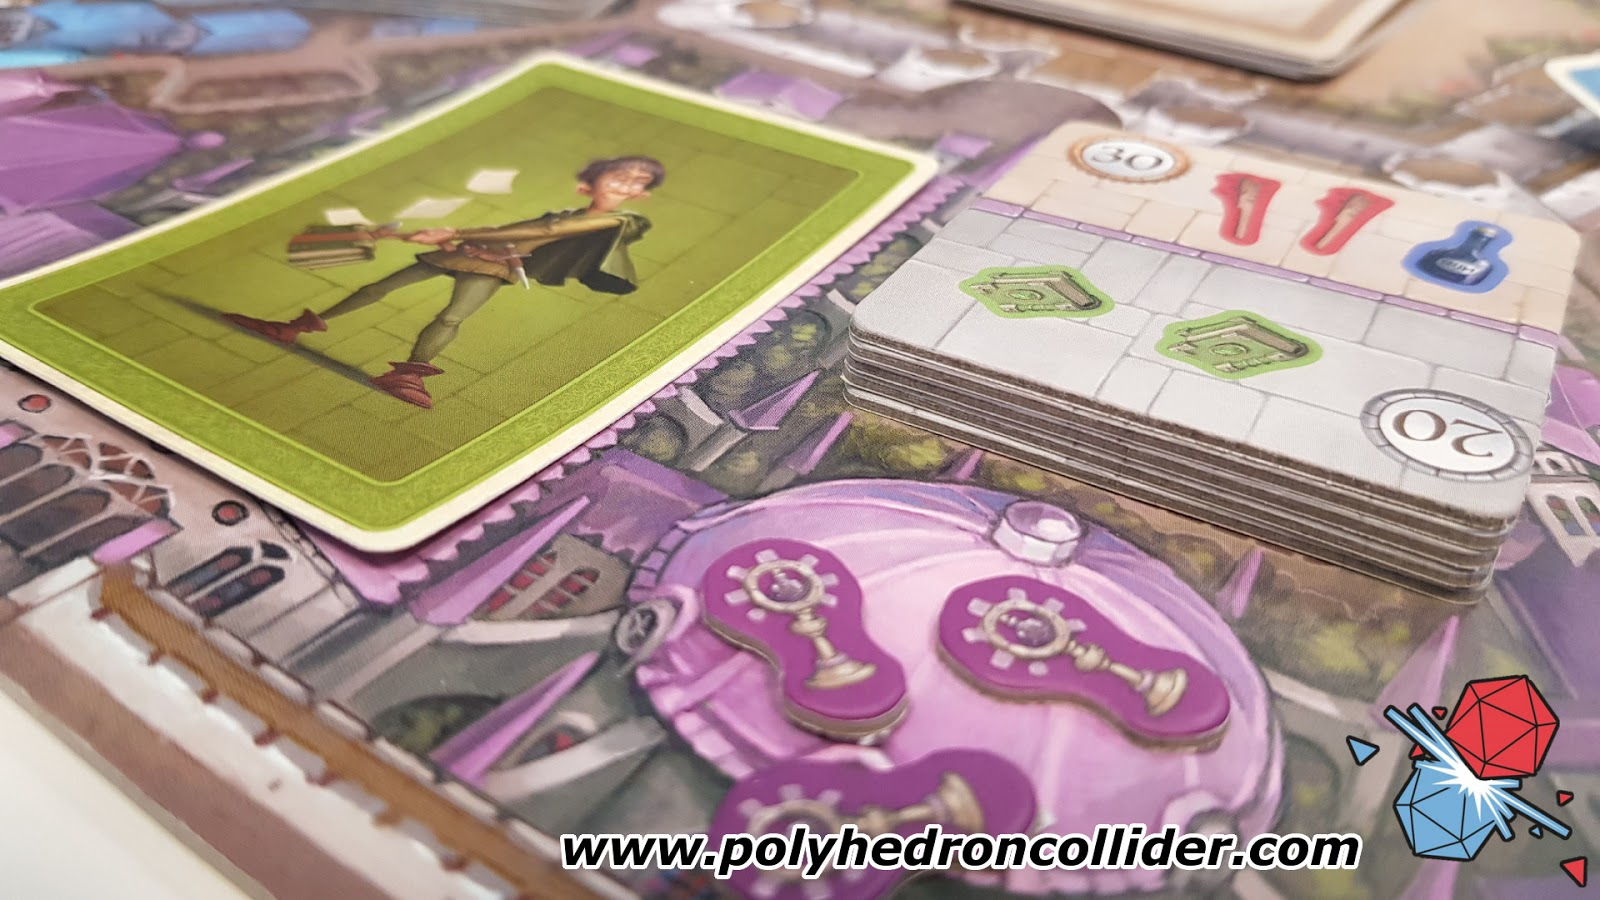 Polyhedron Collider Slyville Board Game Review - In Play Close up 3